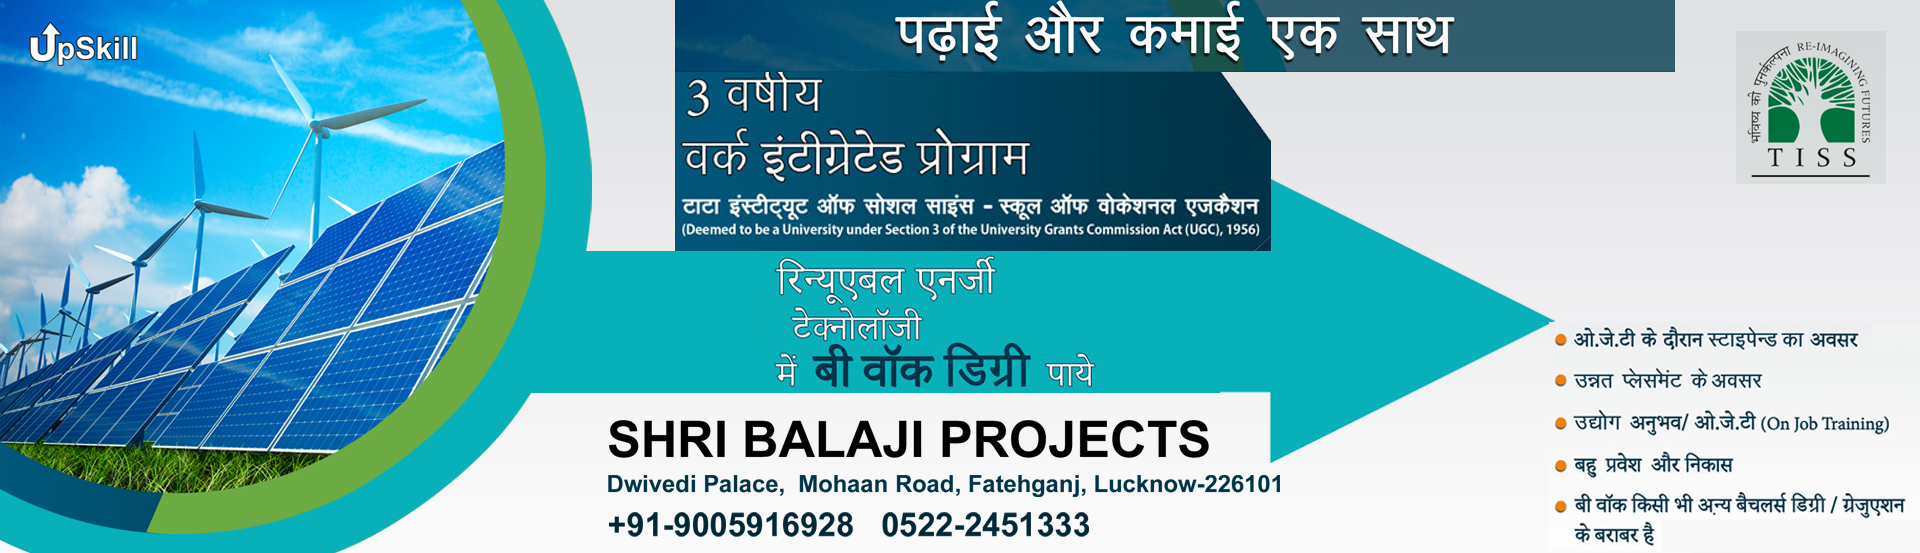 TISS-SVE-SHRI BALAJI PROJECTS-lucknow